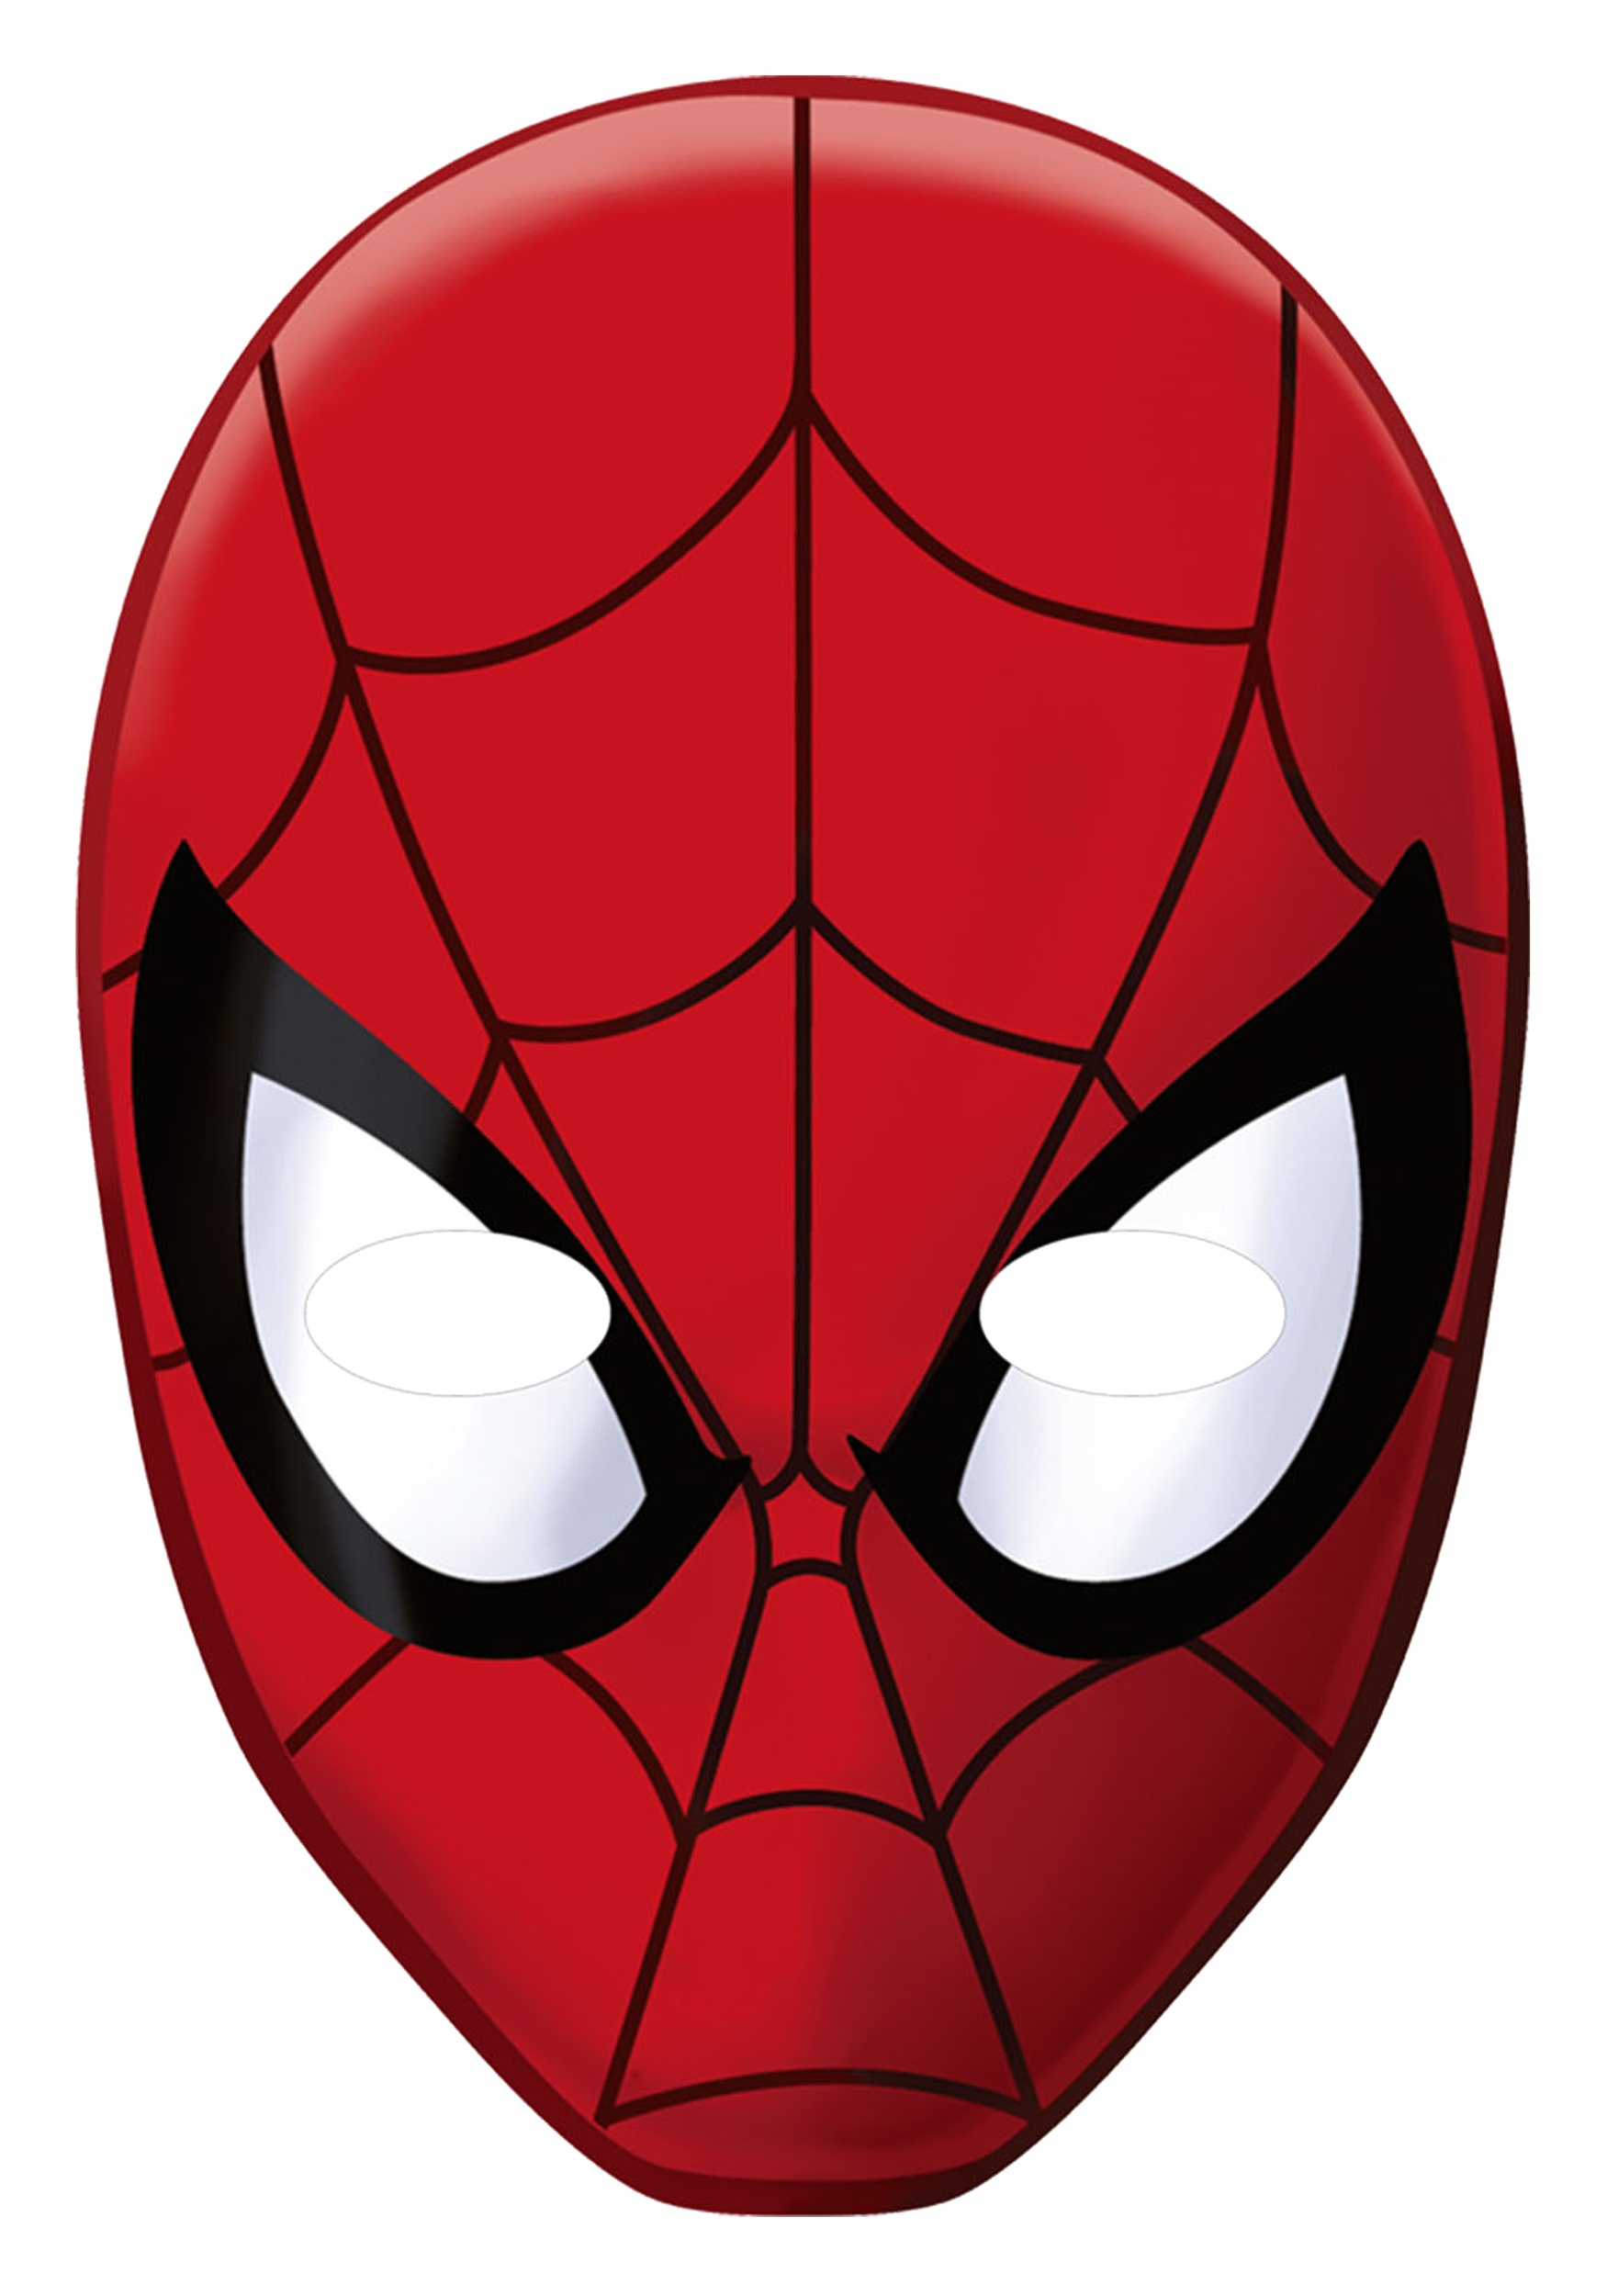 Spiderman Face Images